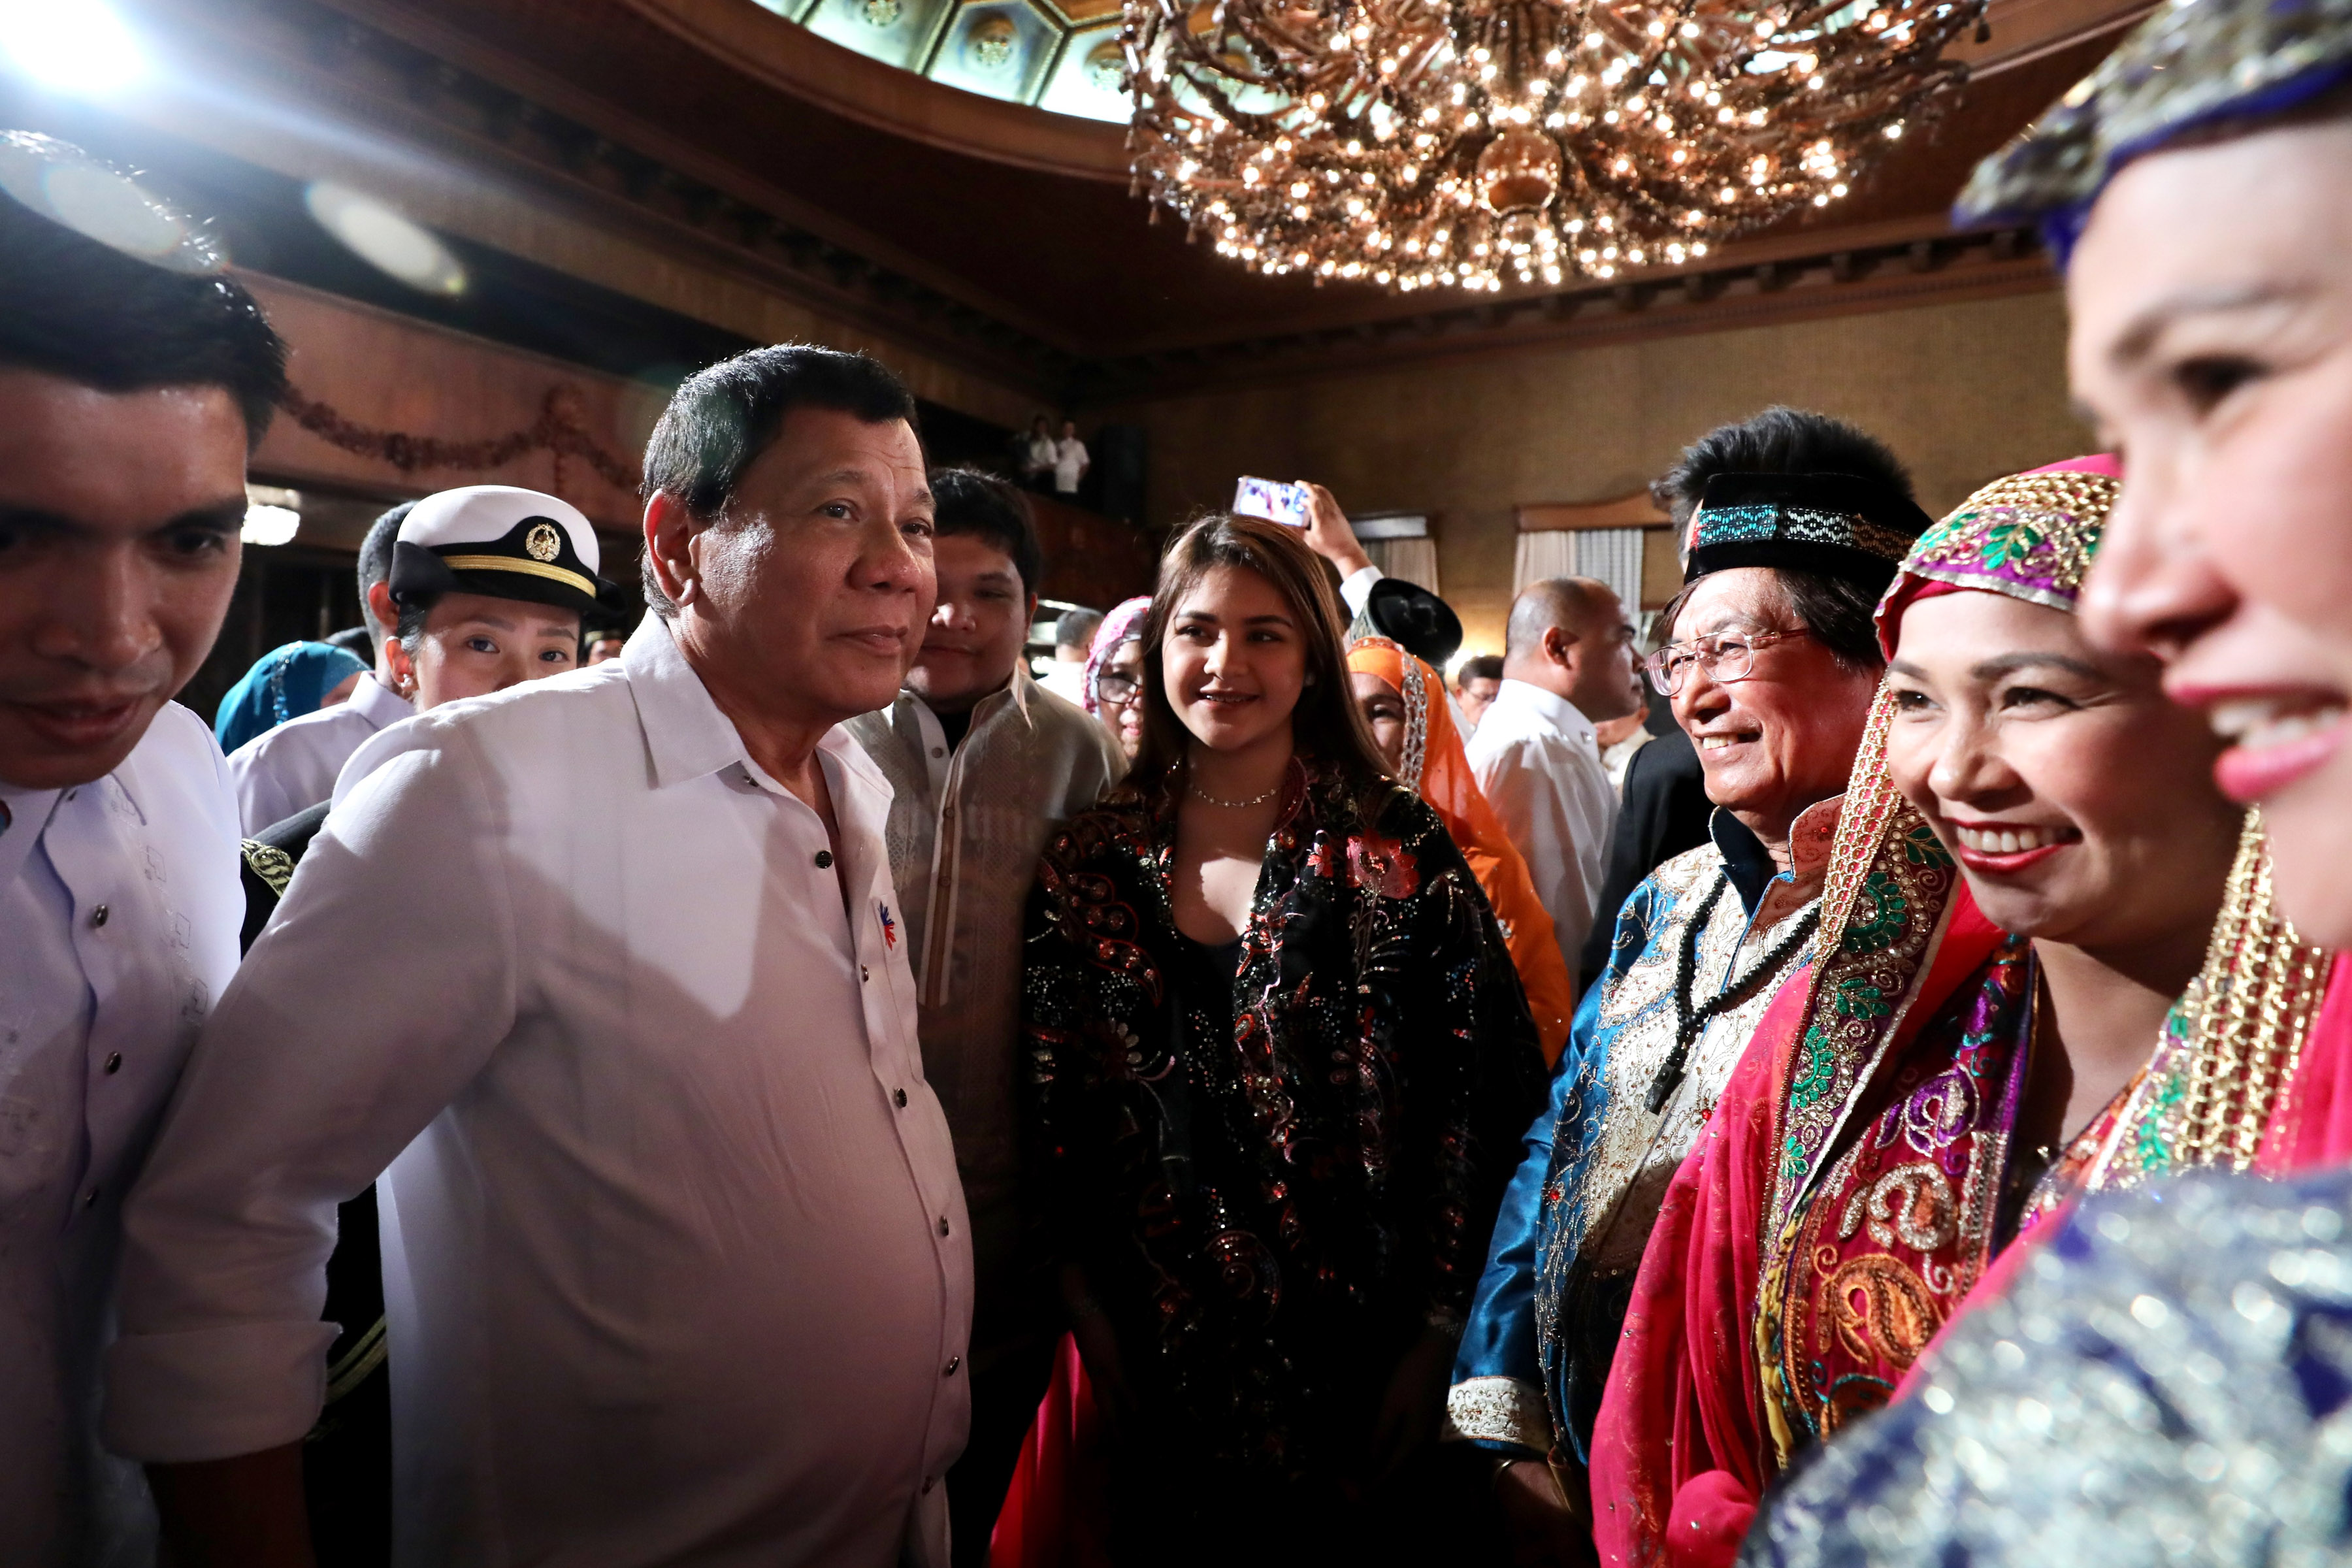 PALACE GUEST. President Duterte's grandchildren Isabelle (middle) and Omar attend the Eid'l Fitr celebration in Malacau00f1ang with their mother Lovelie Sangkola Sumera (foreground, in blue). Presidential photo